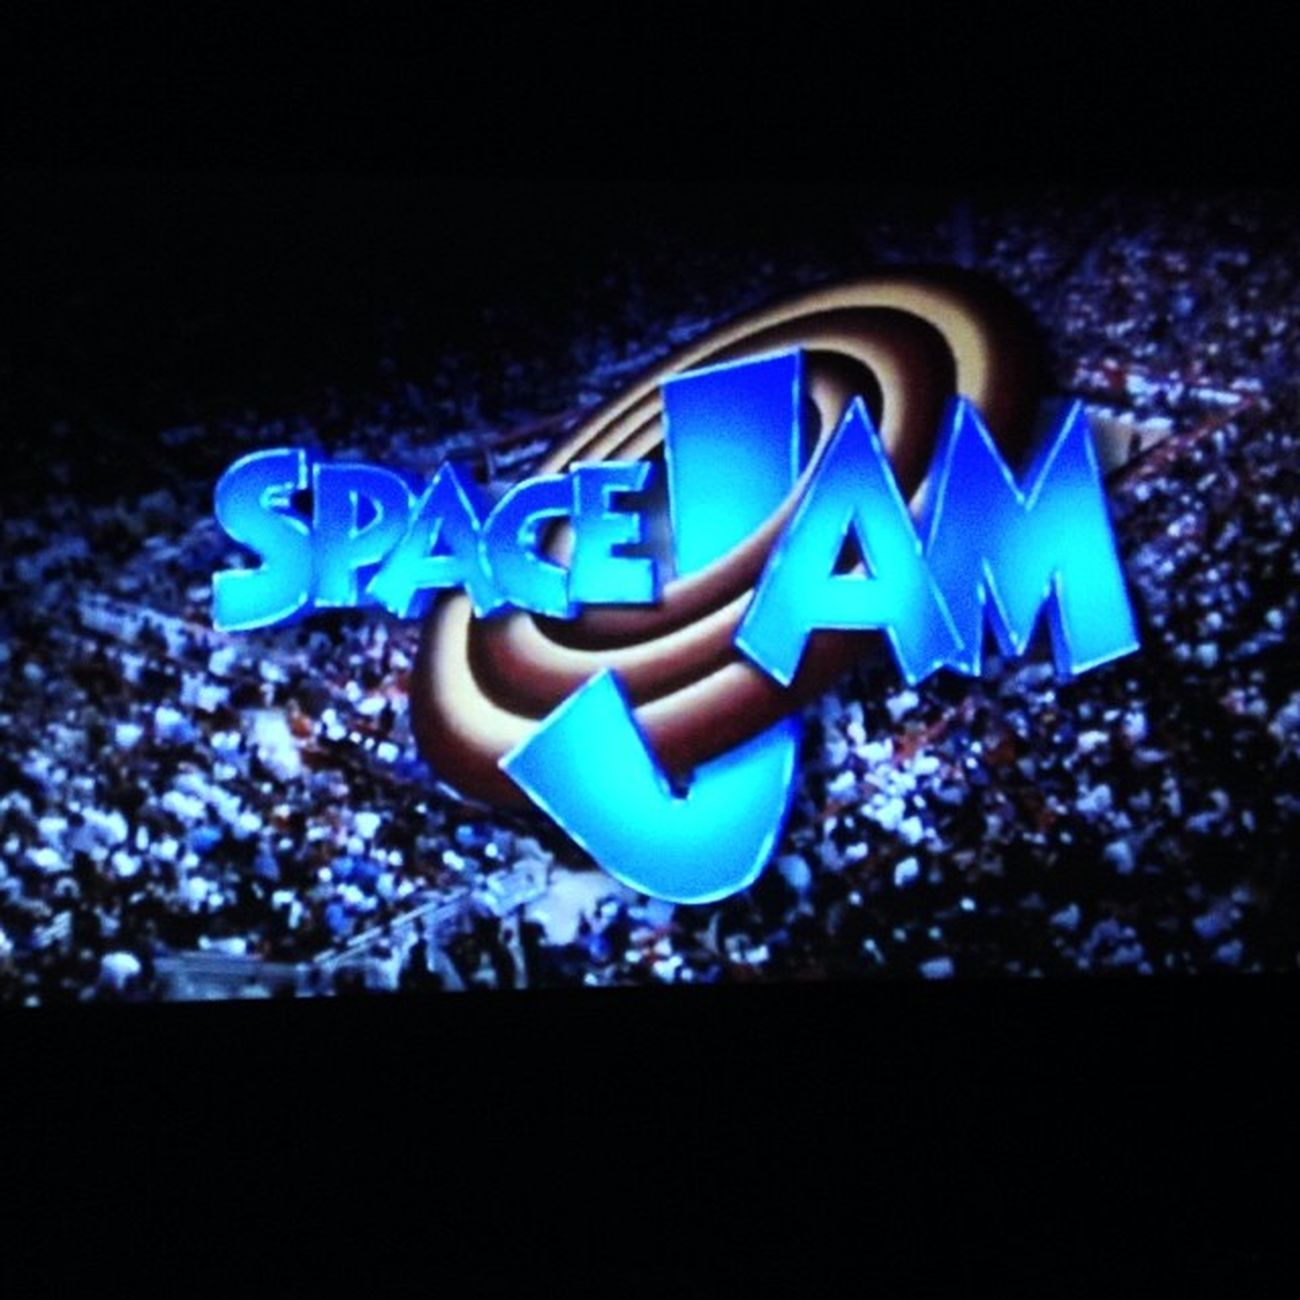 Nowwatching Spacejam Michaeljordan Childhood bugsbunny